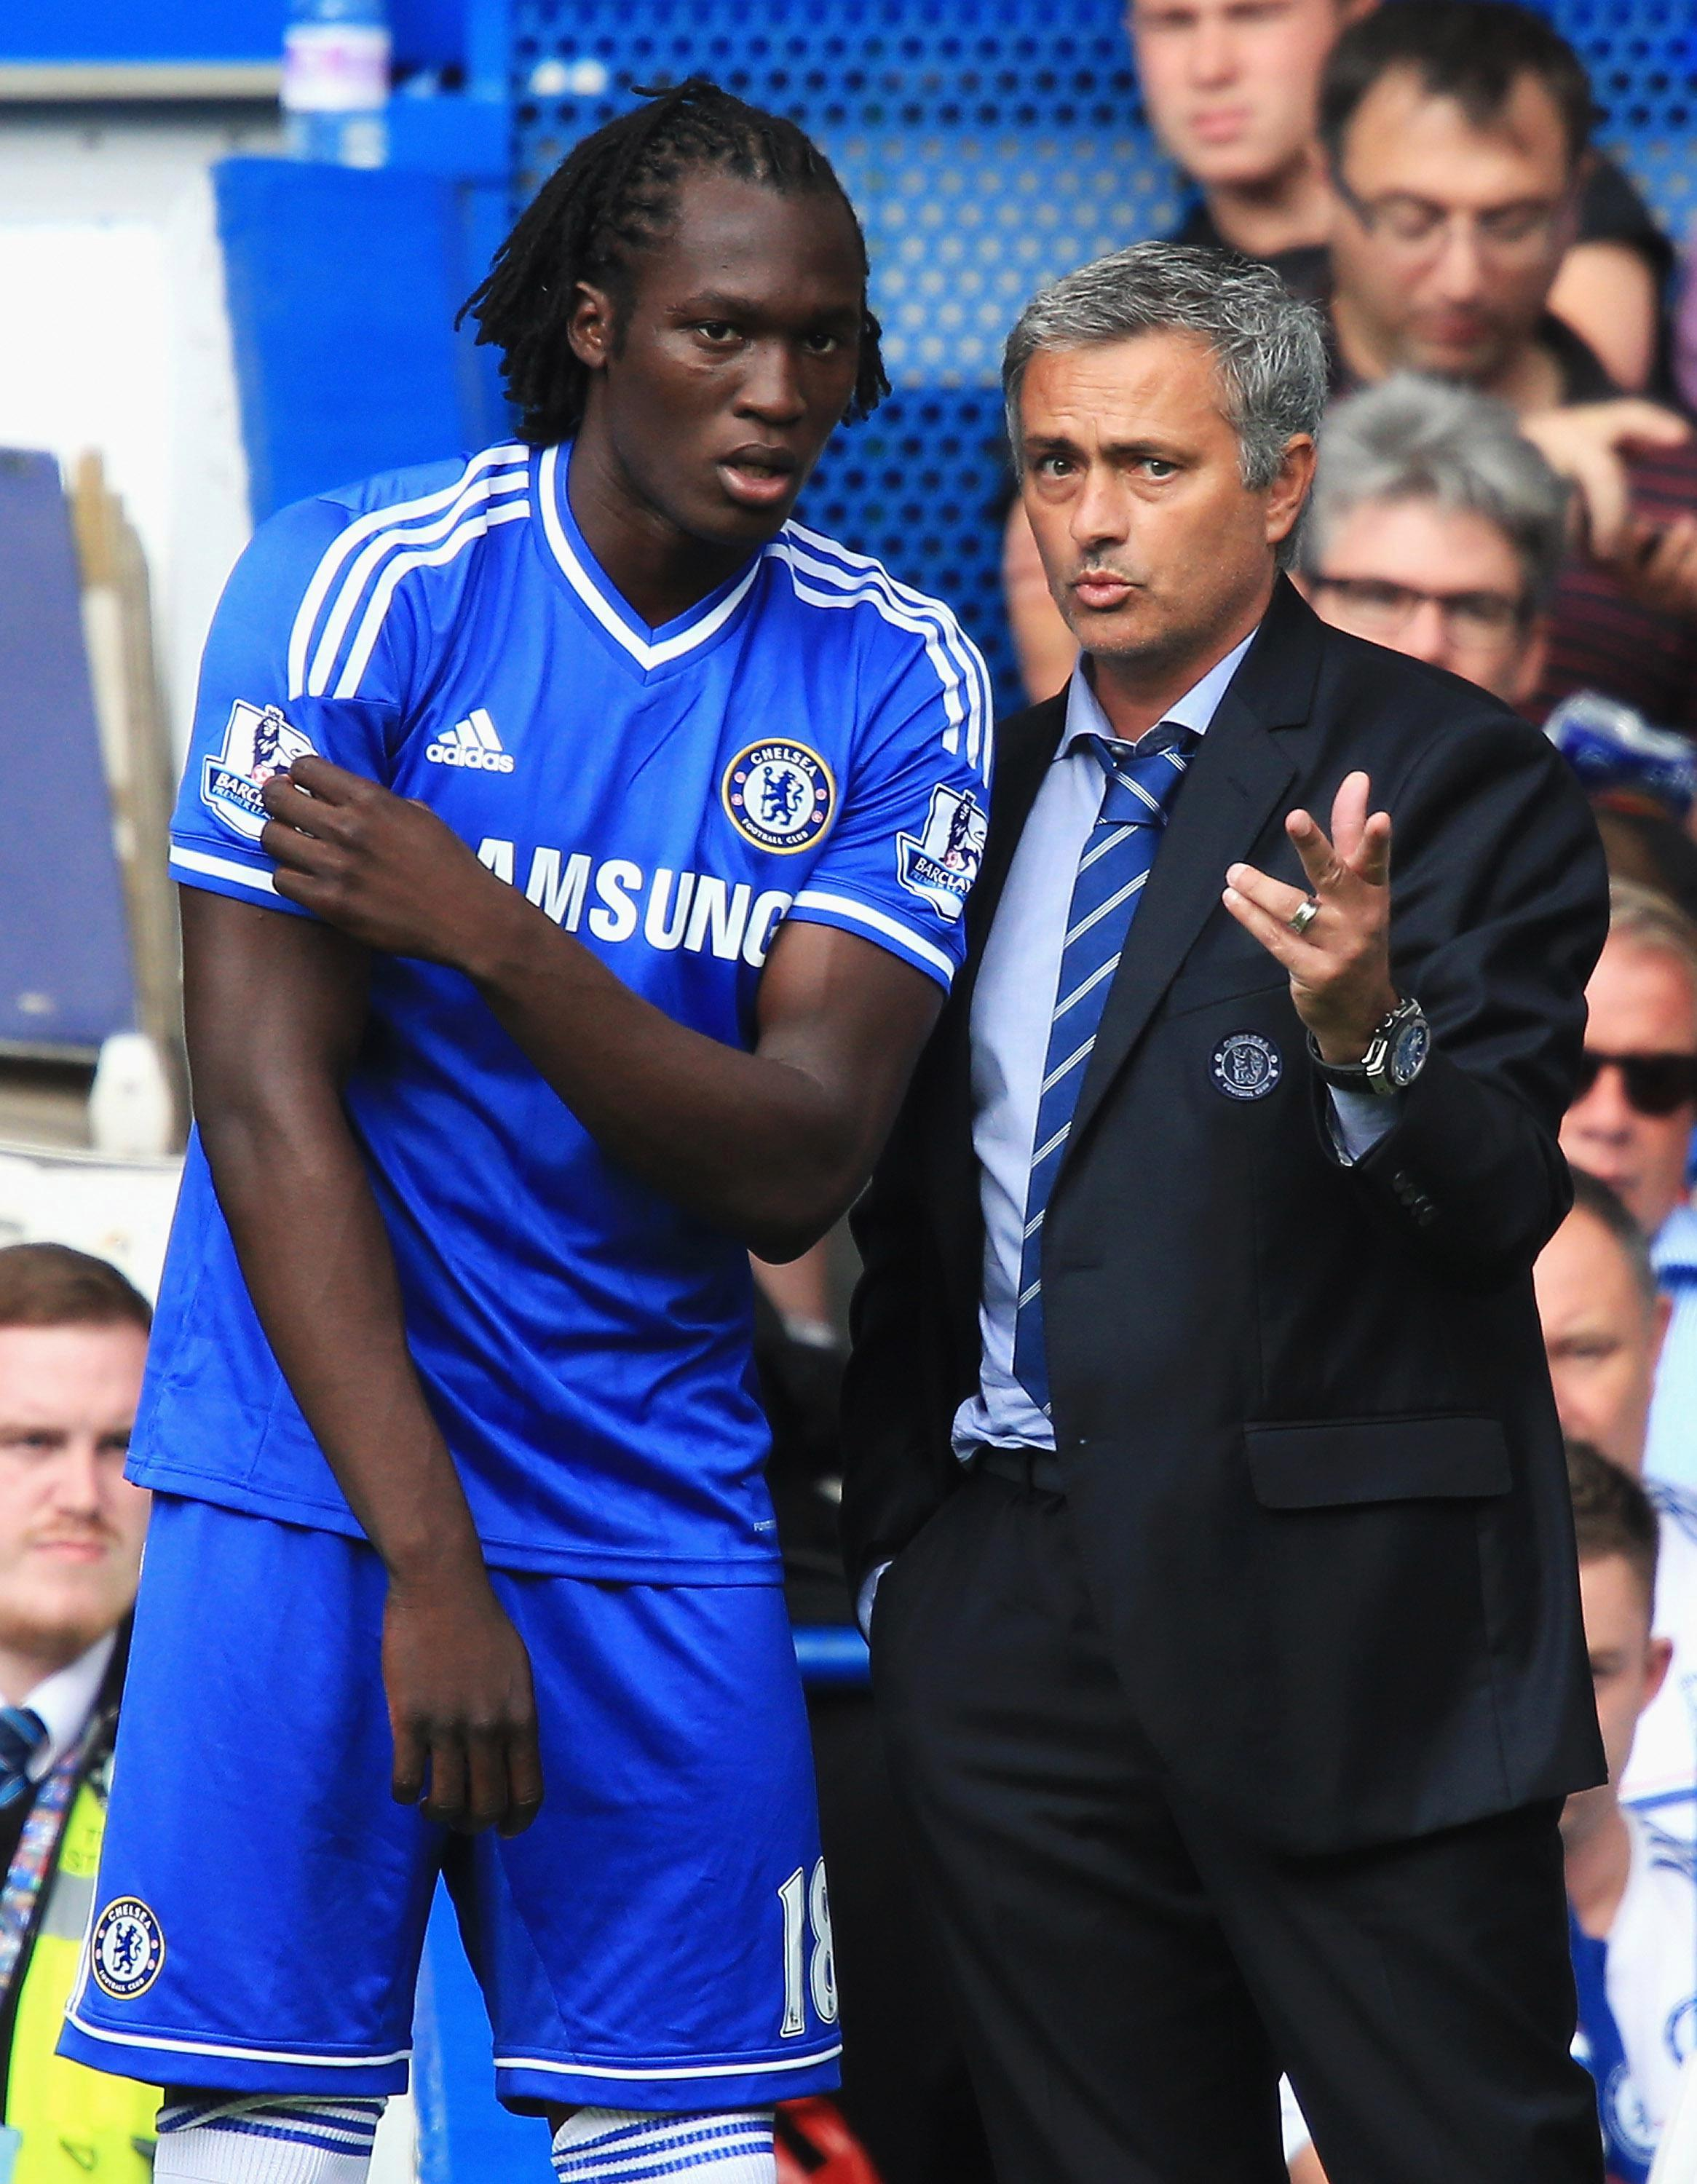 Chelsea wrongly assumed Romelu Lukaku would not work with Jose Mourinho after he sold him to Everton in 2013